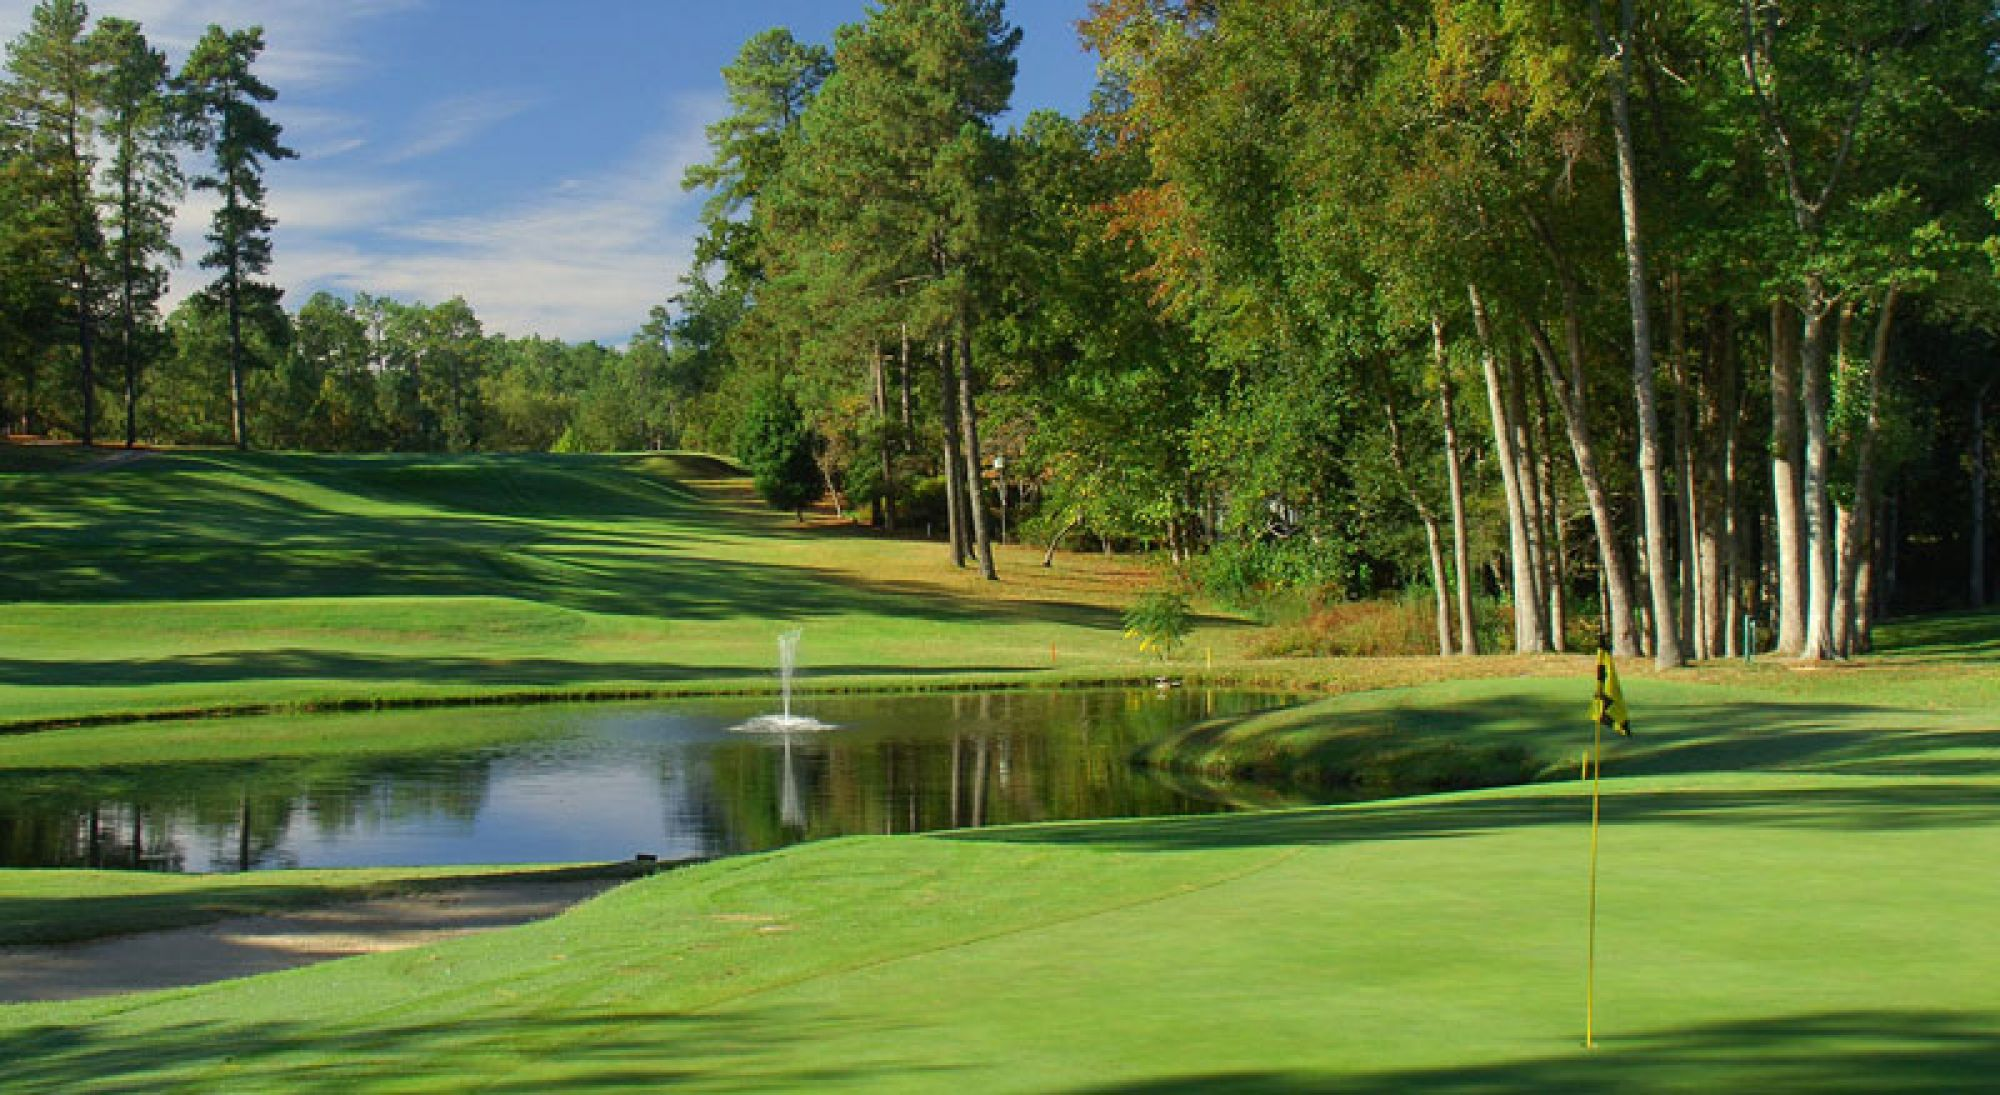 All The Pinehurst Resort Golf's picturesque golf course within stunning North Carolina.